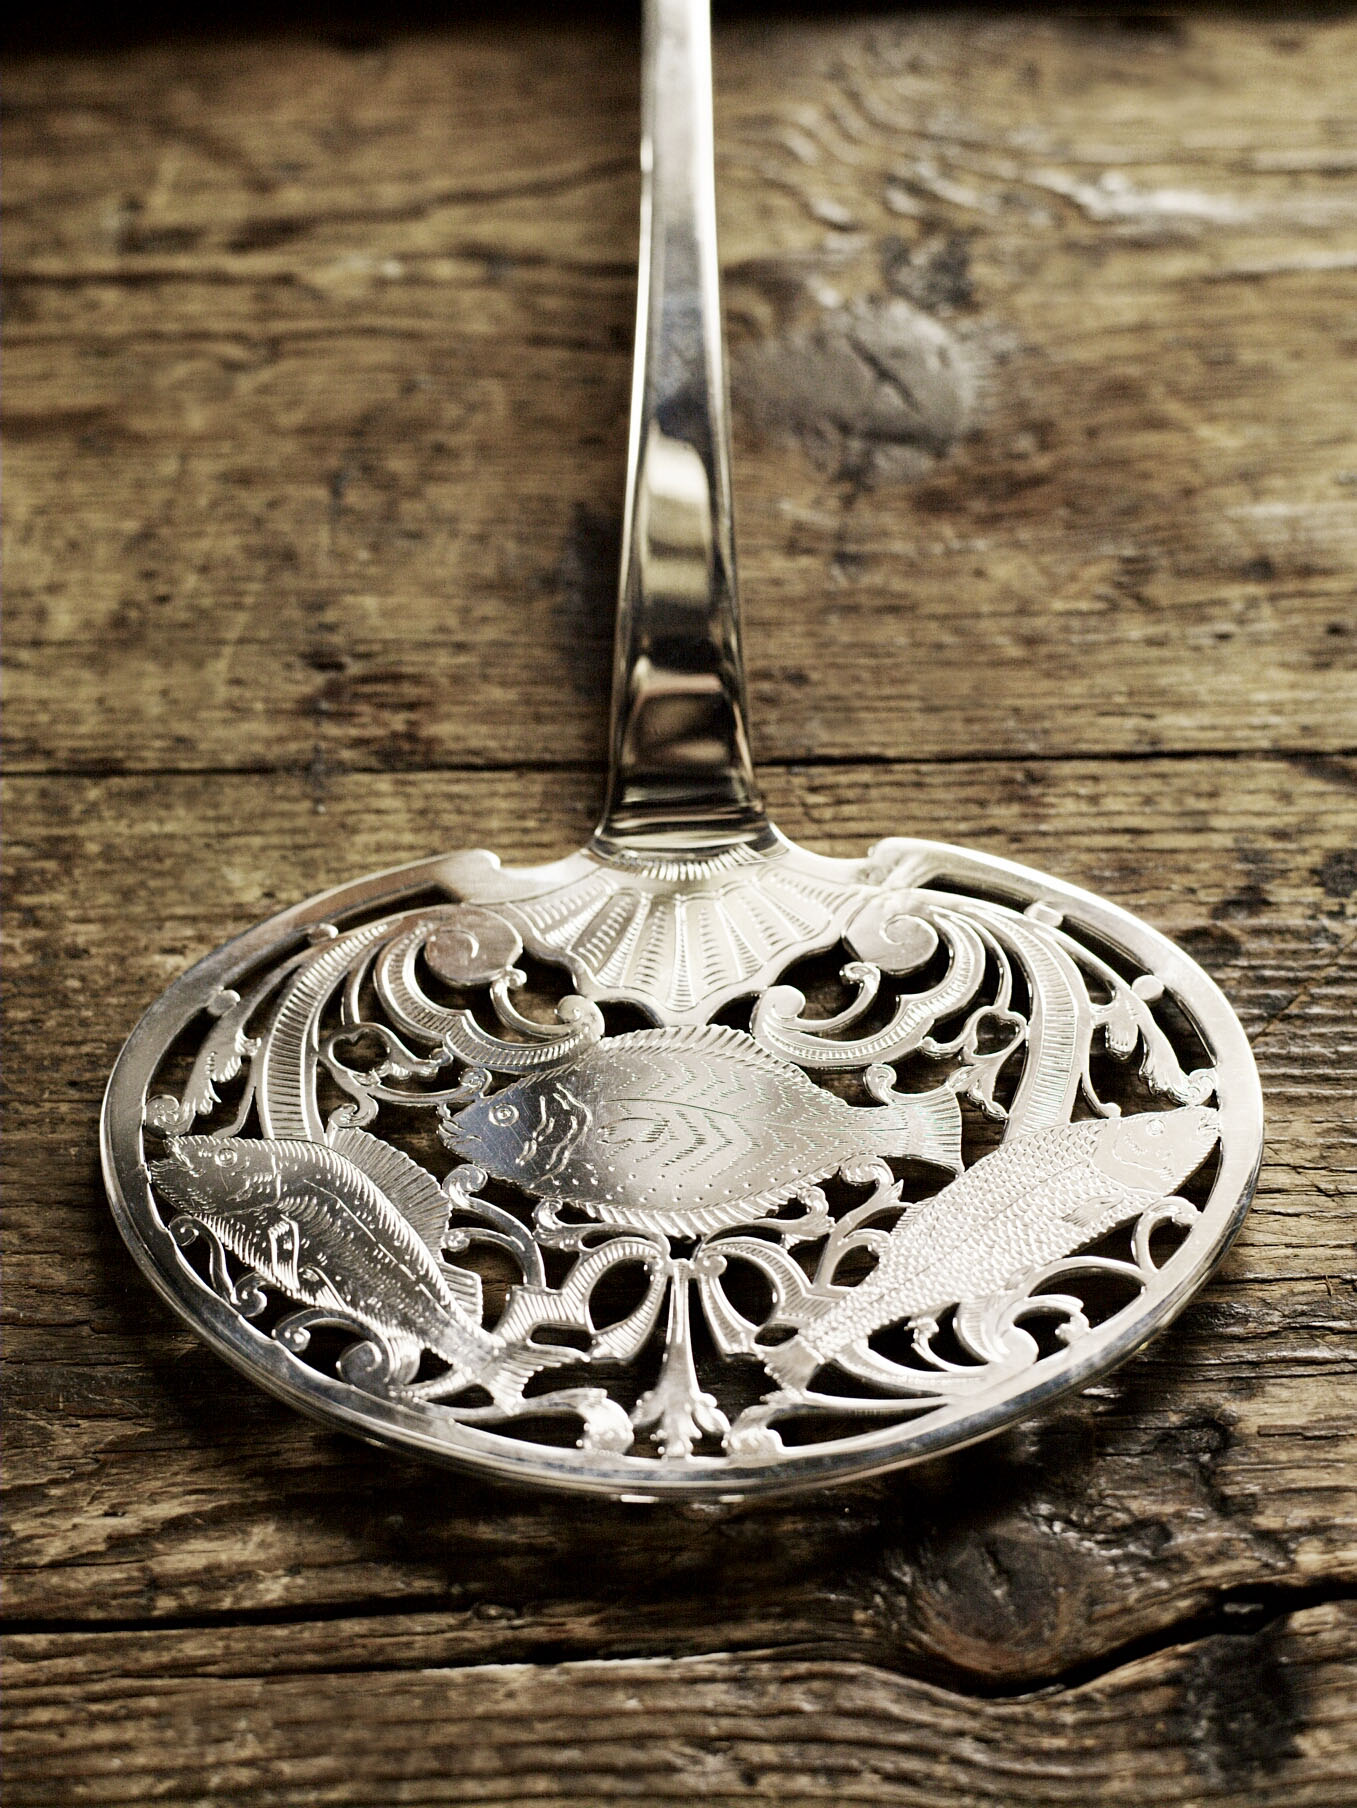 HARTS SILVERSMITH CHIPPING CAMDEN GLOUCESTERSHIRE